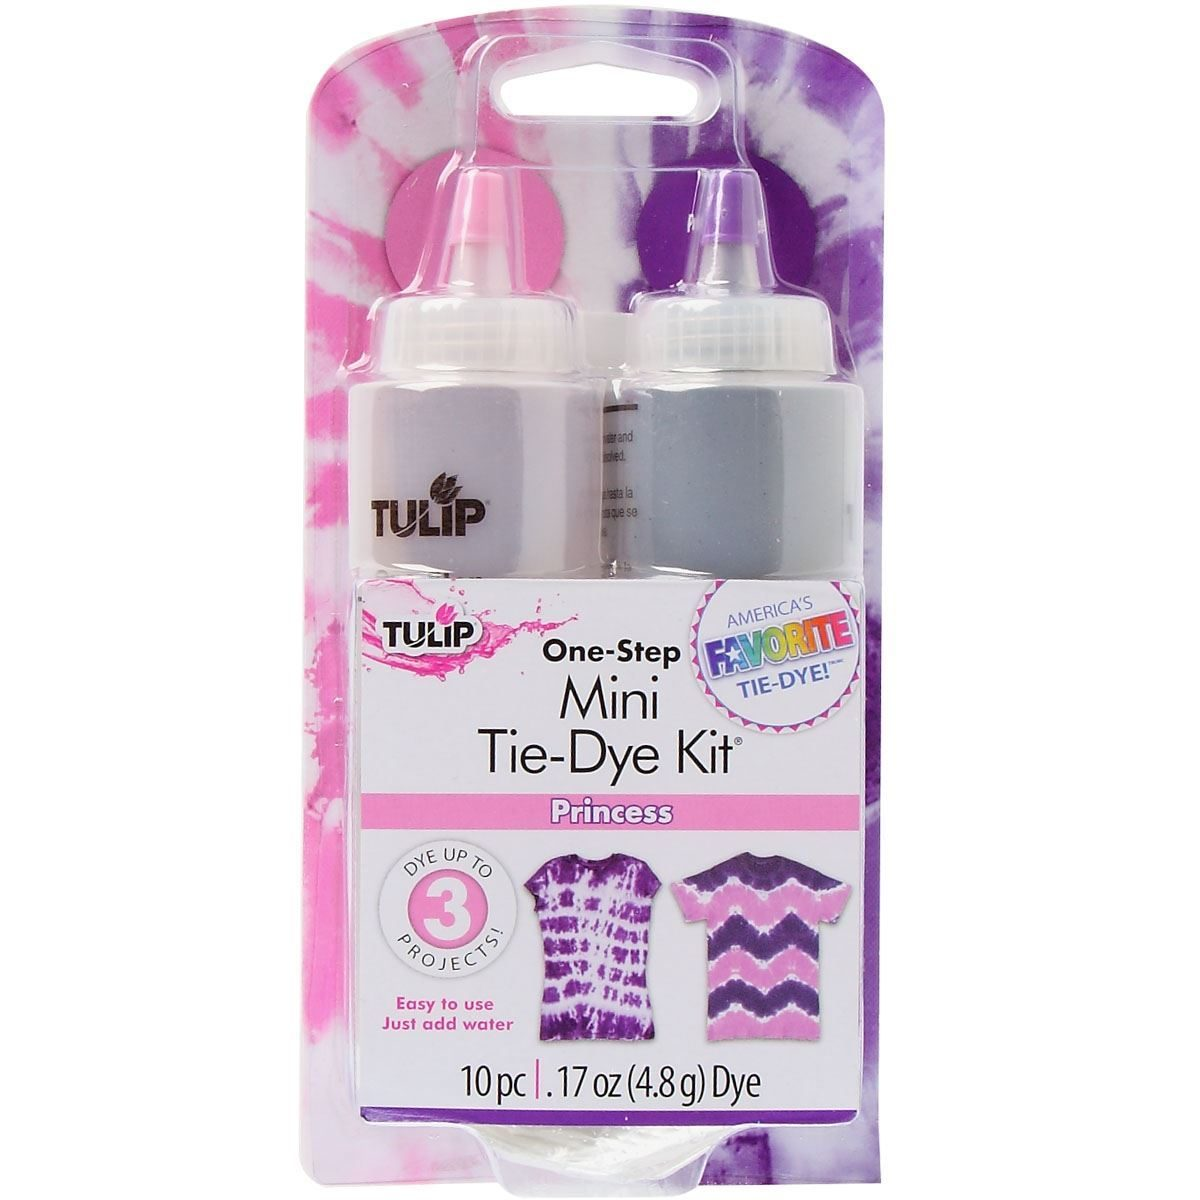 Tulip Princess One-Step Mini Tie-Dye Kit